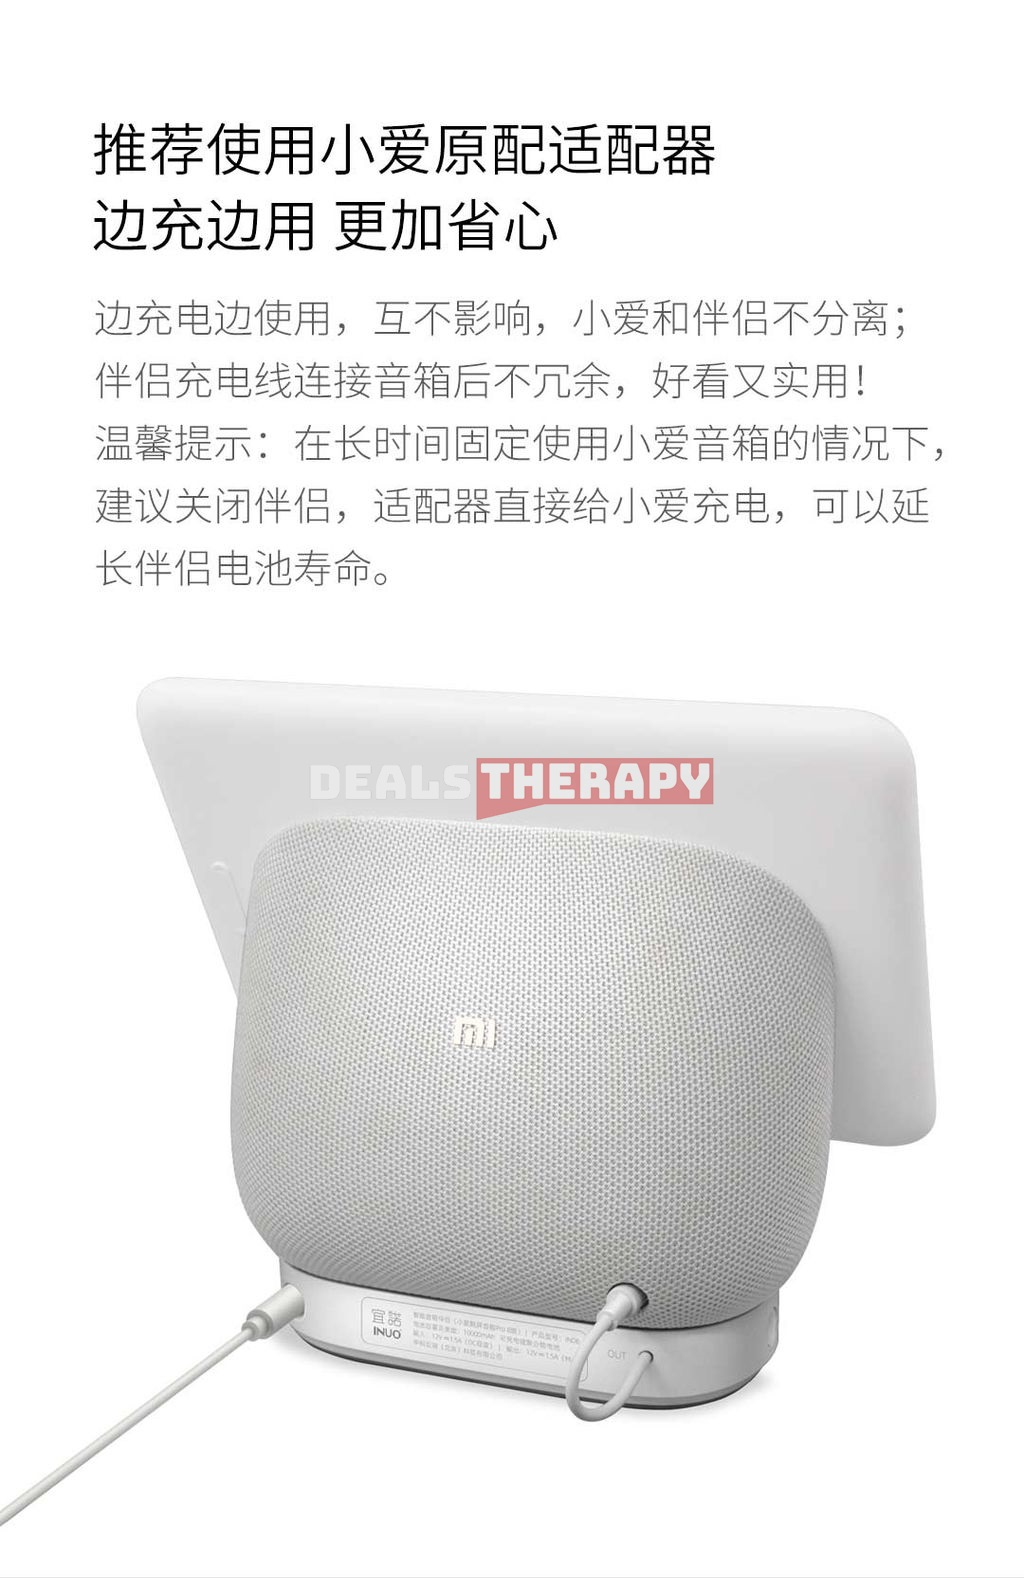 Xiaomi INUO Smart Speaker Companion